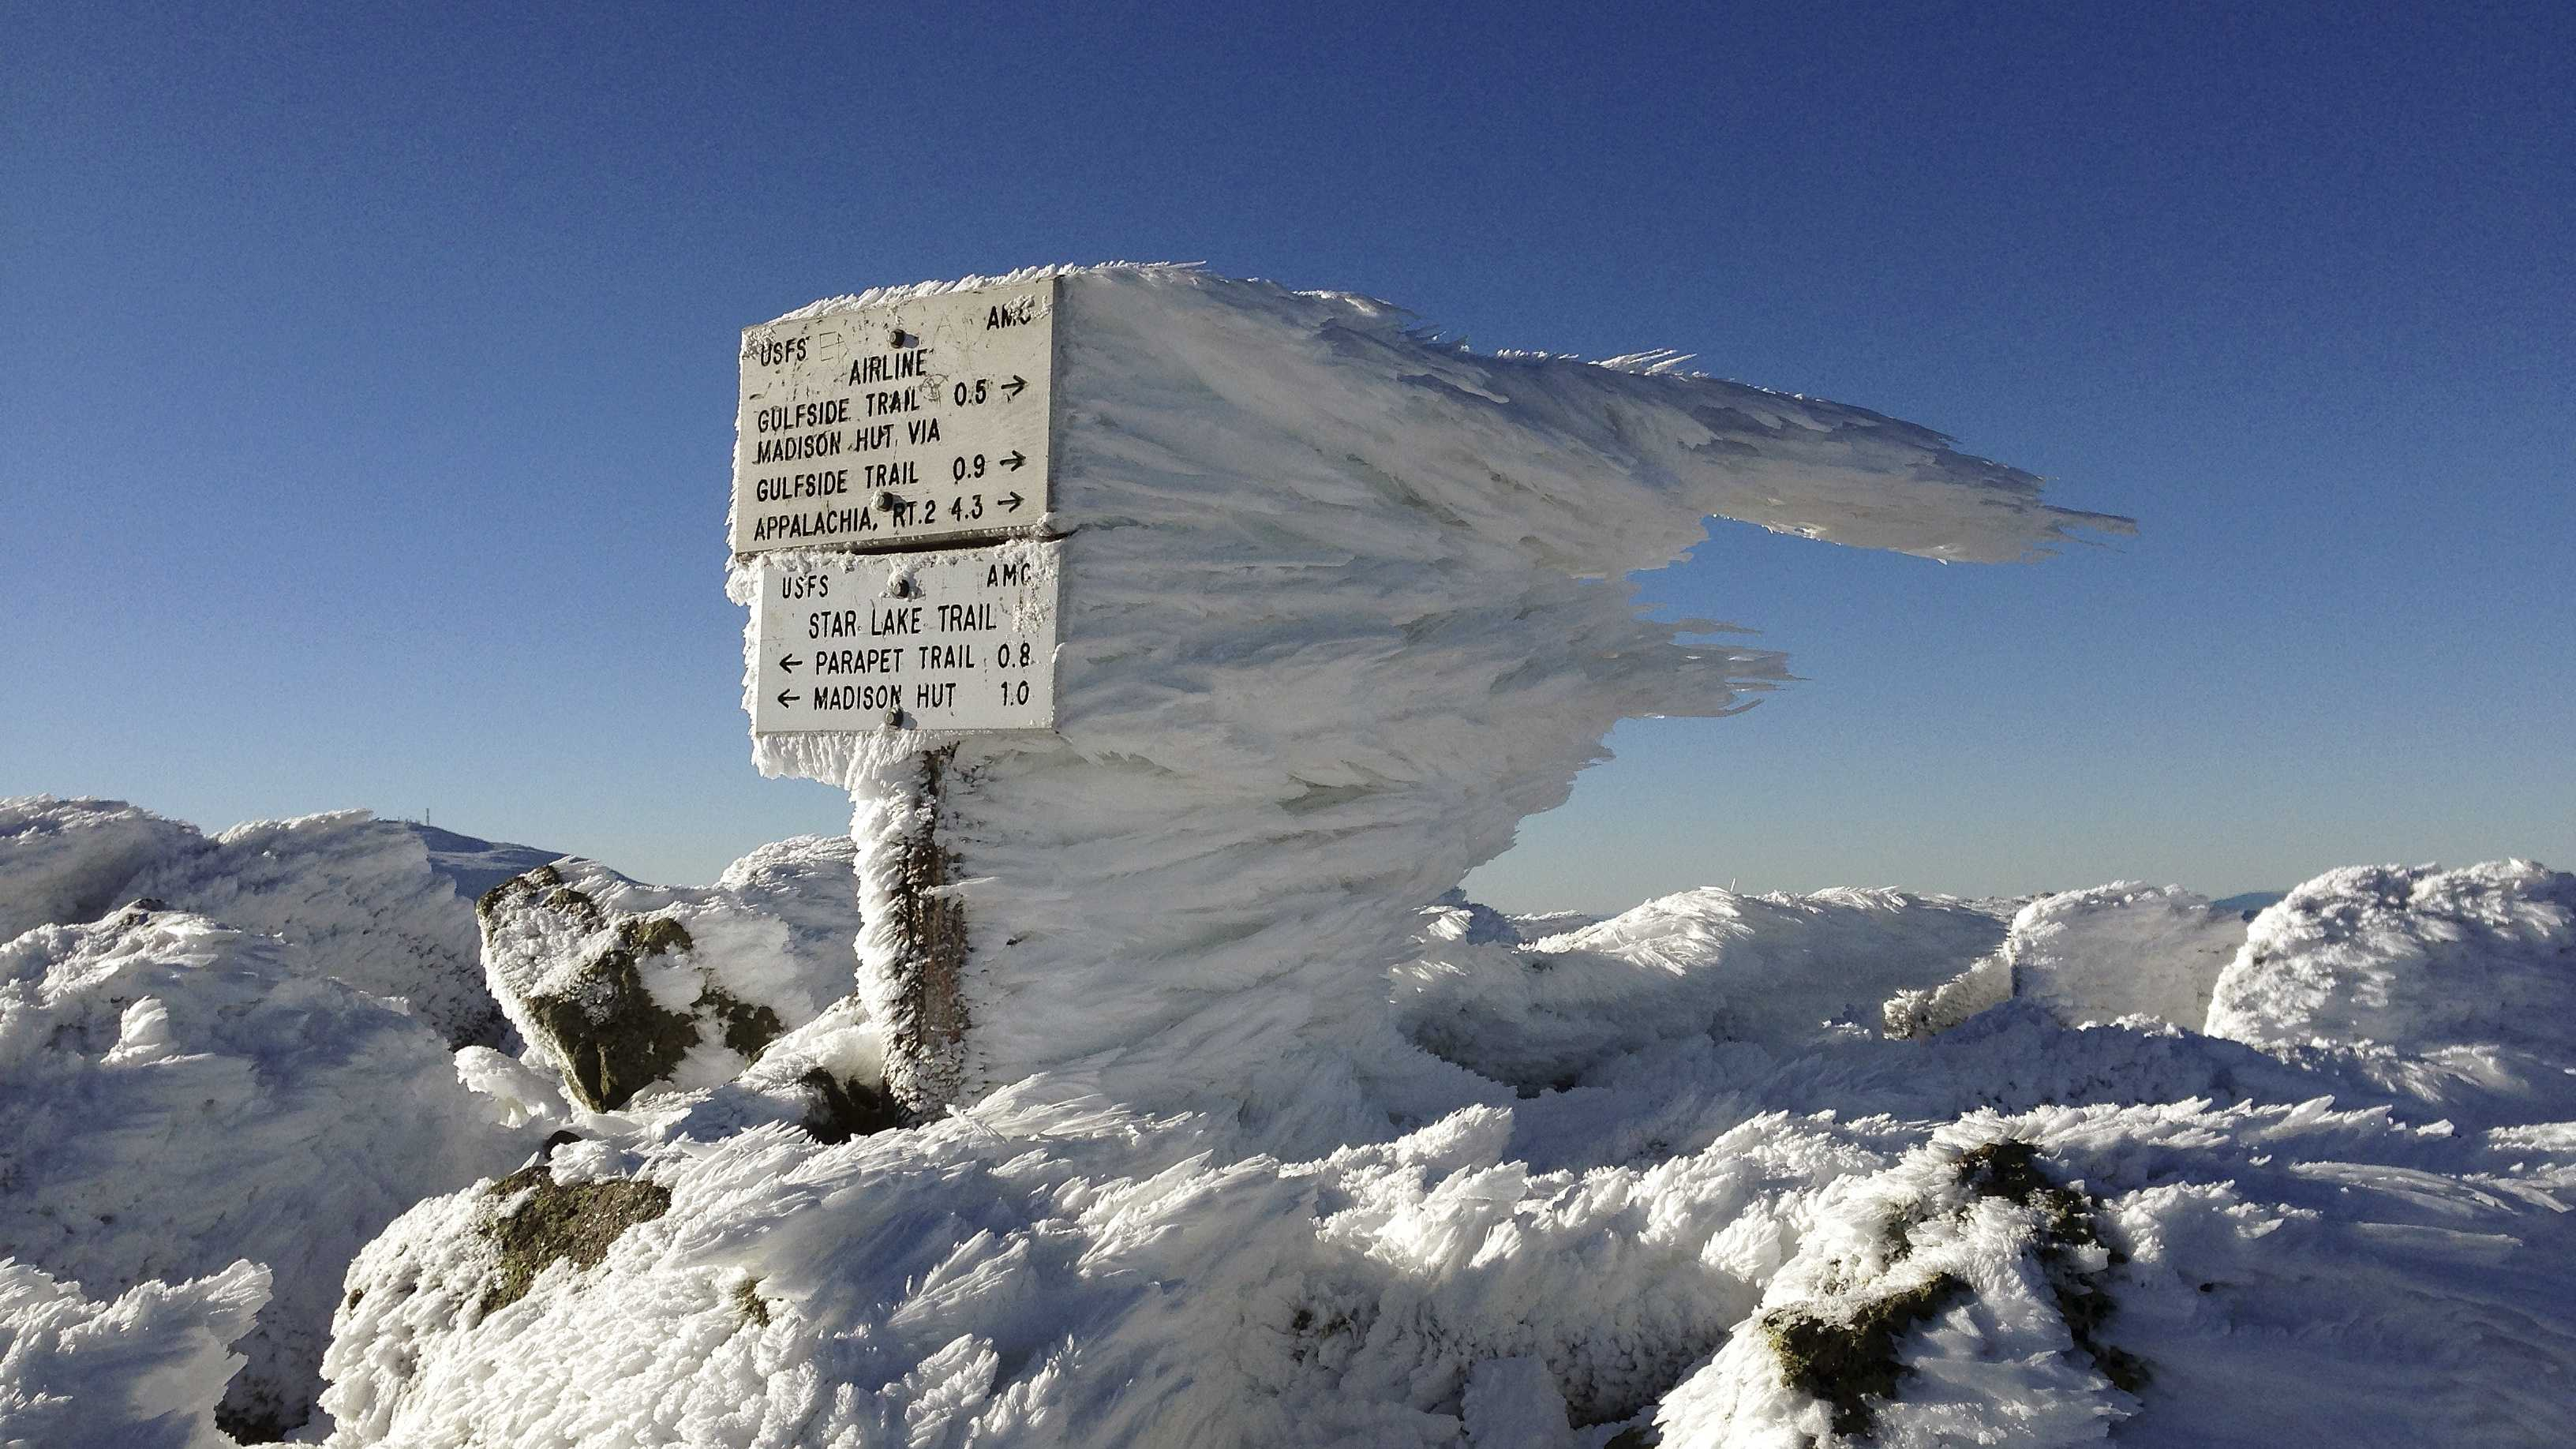 Rime ice extends several feet horizontally from a sign marking the summit of 5,774-foot Mount Adams, the second highest mountain in New England, on Tuesday, Nov. 17, 2015, in northern New Hampshire. Monday's freezing fog and strong winds formed the rime ice, creating a winter wonderland above treeline in New Hampshire's aptly named White Mountains.